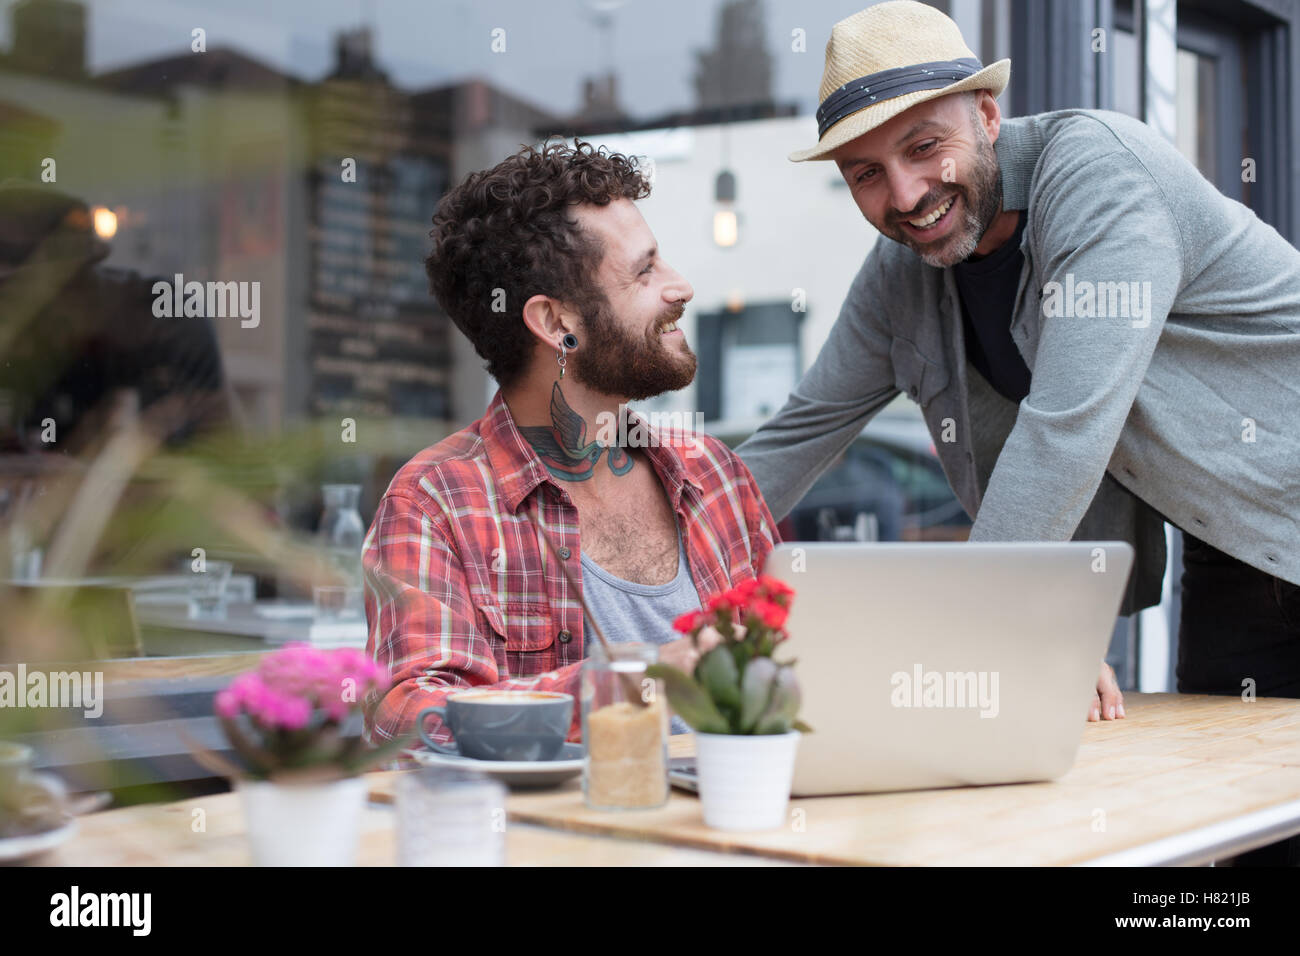 Gay couple sharing laptop in cafe - Stock Image